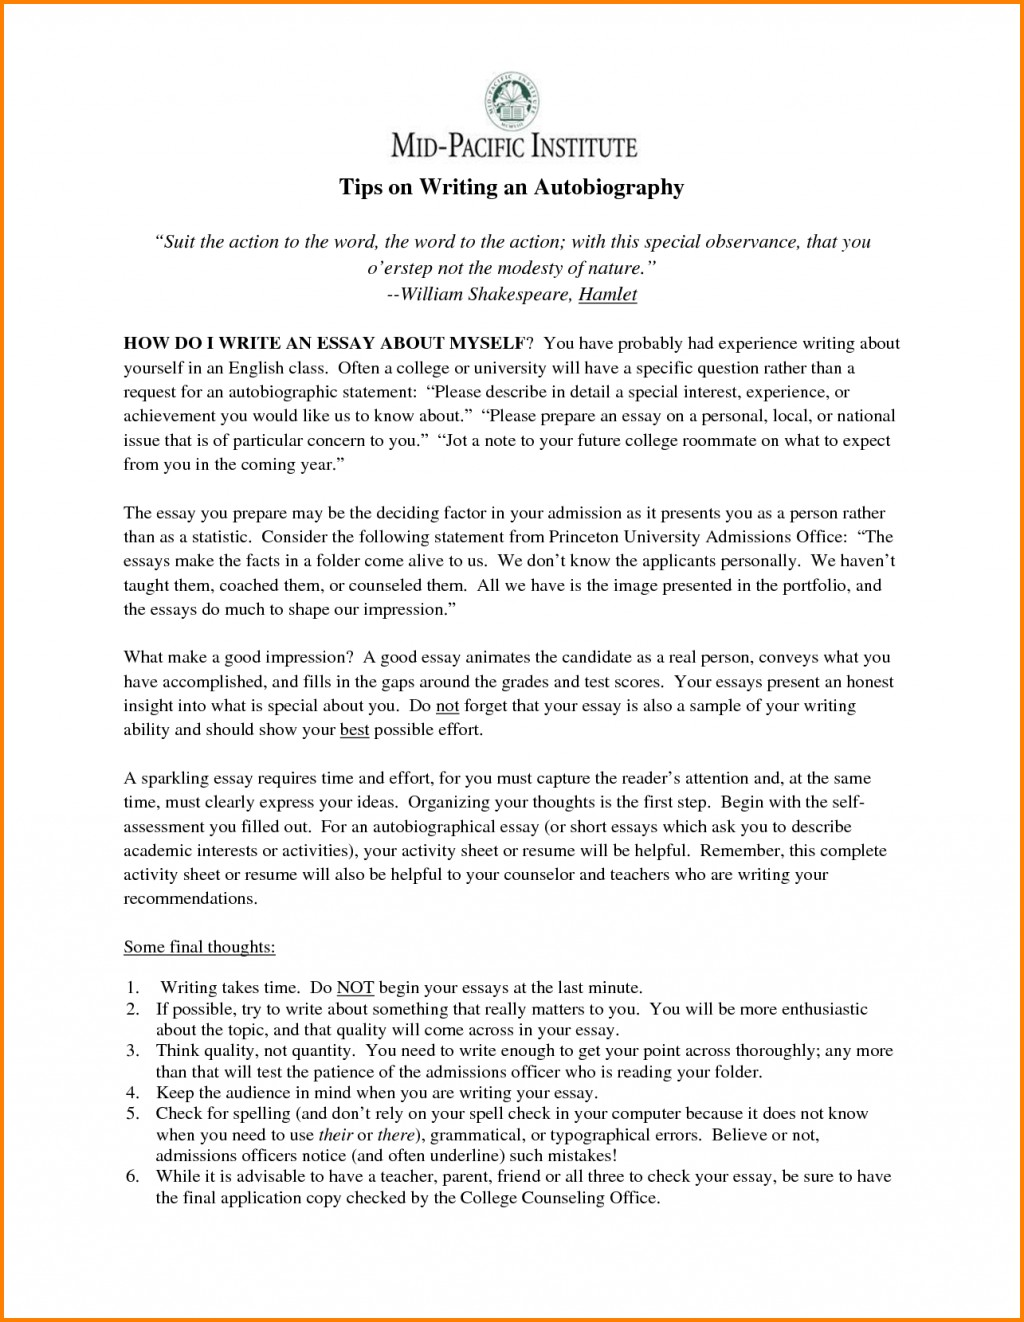 013 Best Solutions Of Tips On Writing Narrative Essay How To Start College Spectacular Write Application Outline Breathtaking An Argumentative Example About Yourself For Scholarship Analysis A Book Large